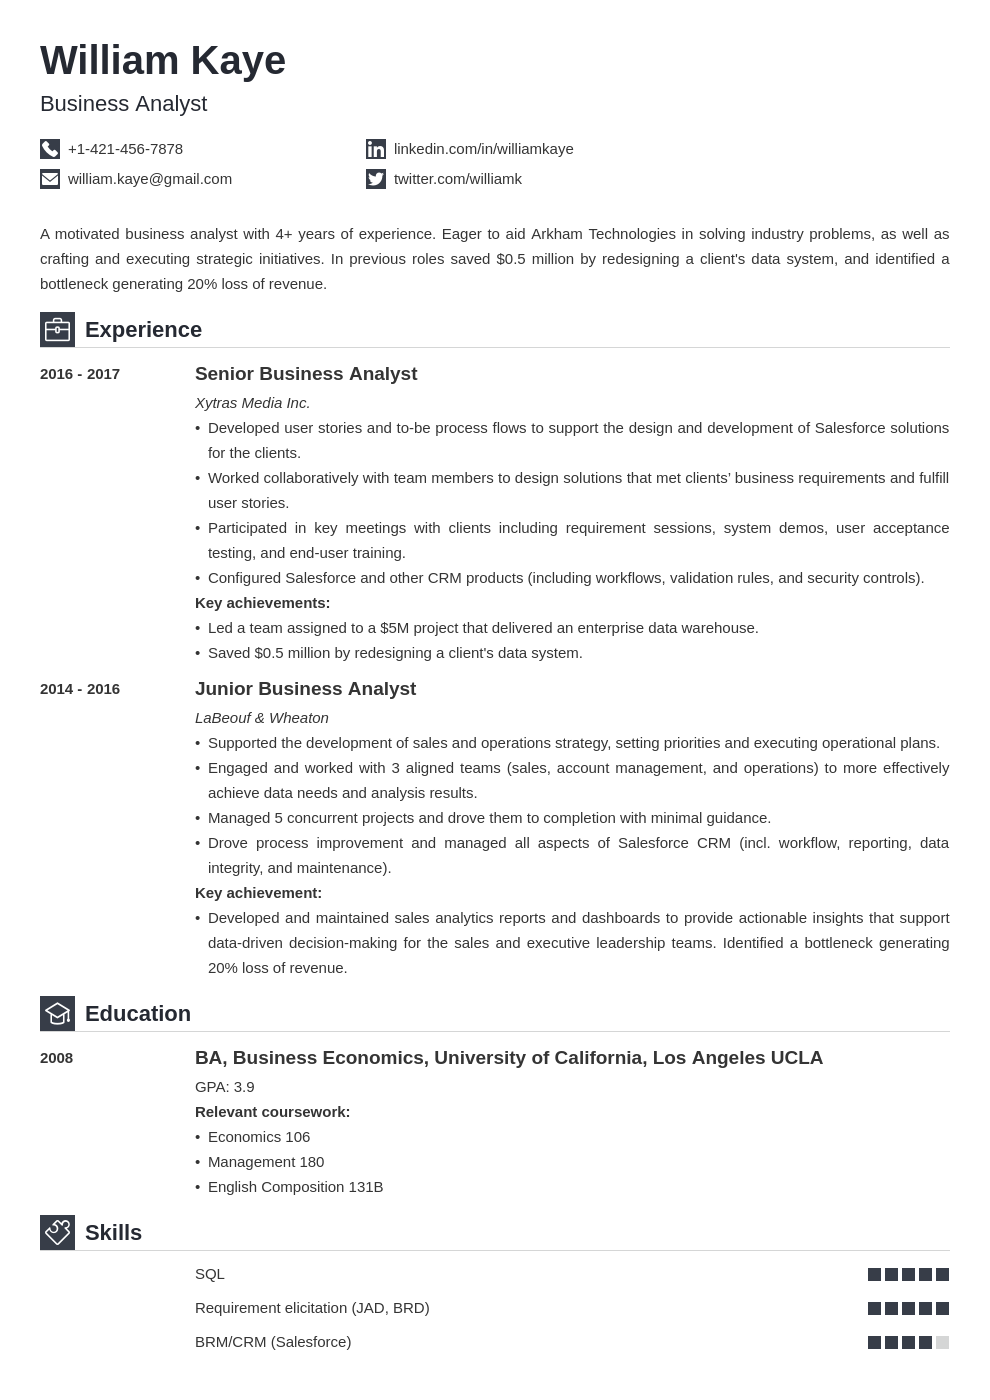 business analyst template iconic uk